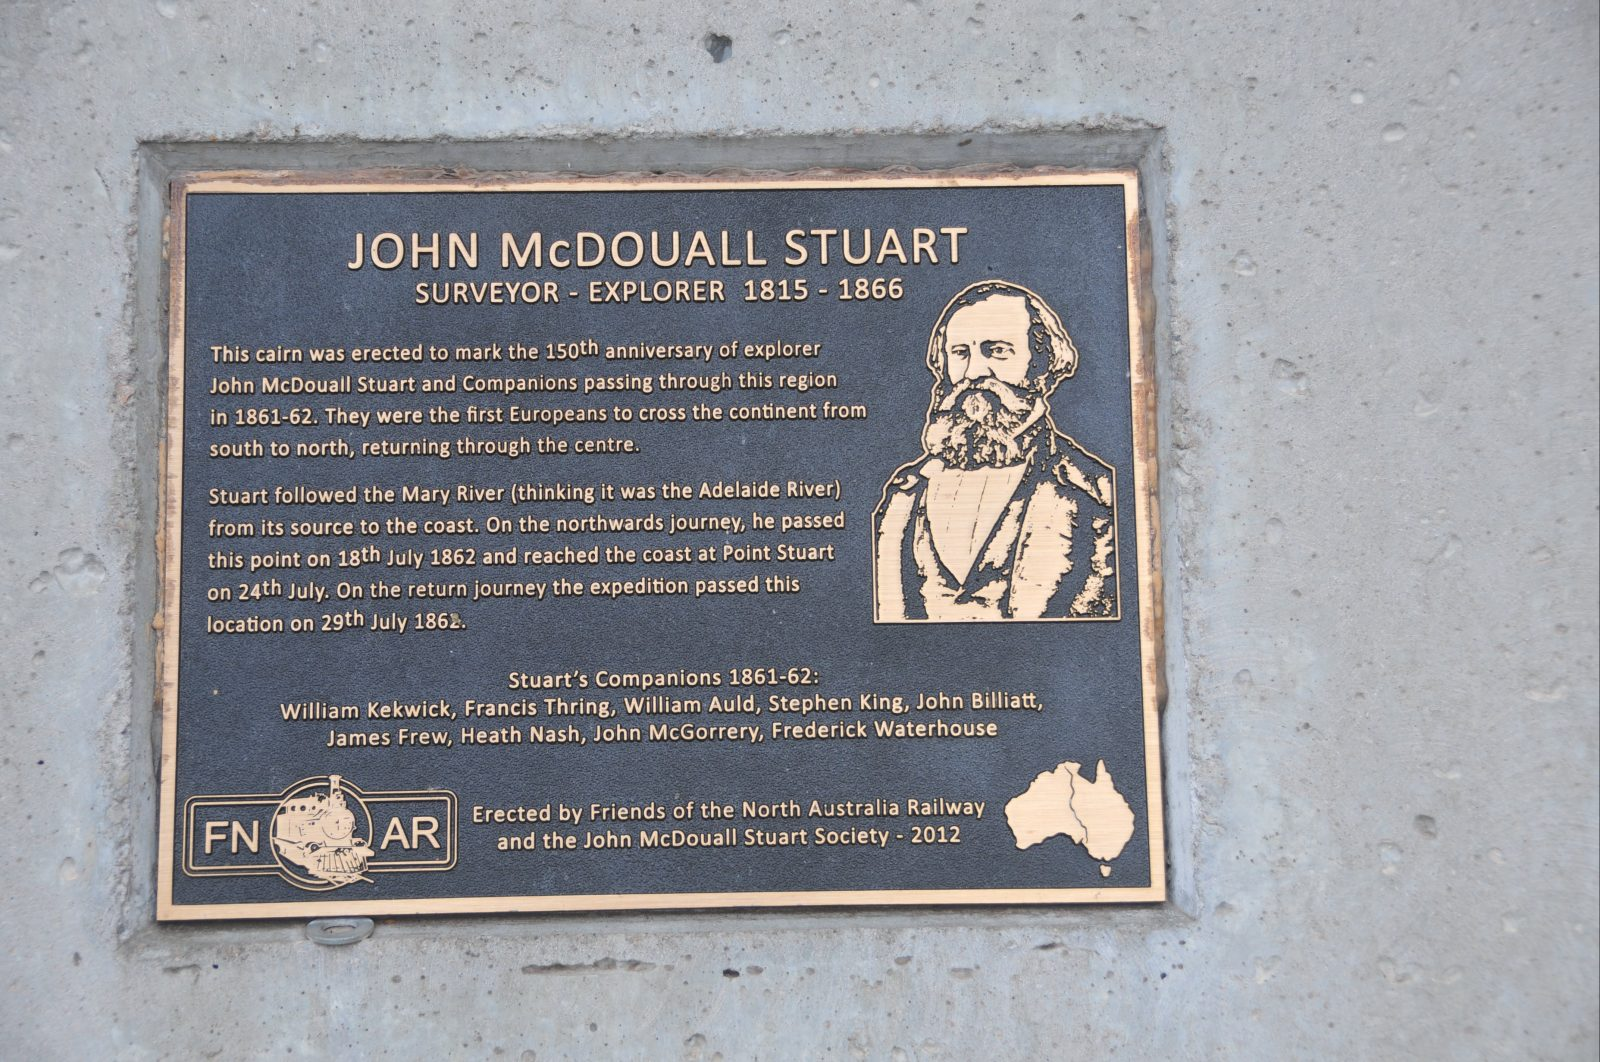 Commemorative plaque forming part of the memorial.